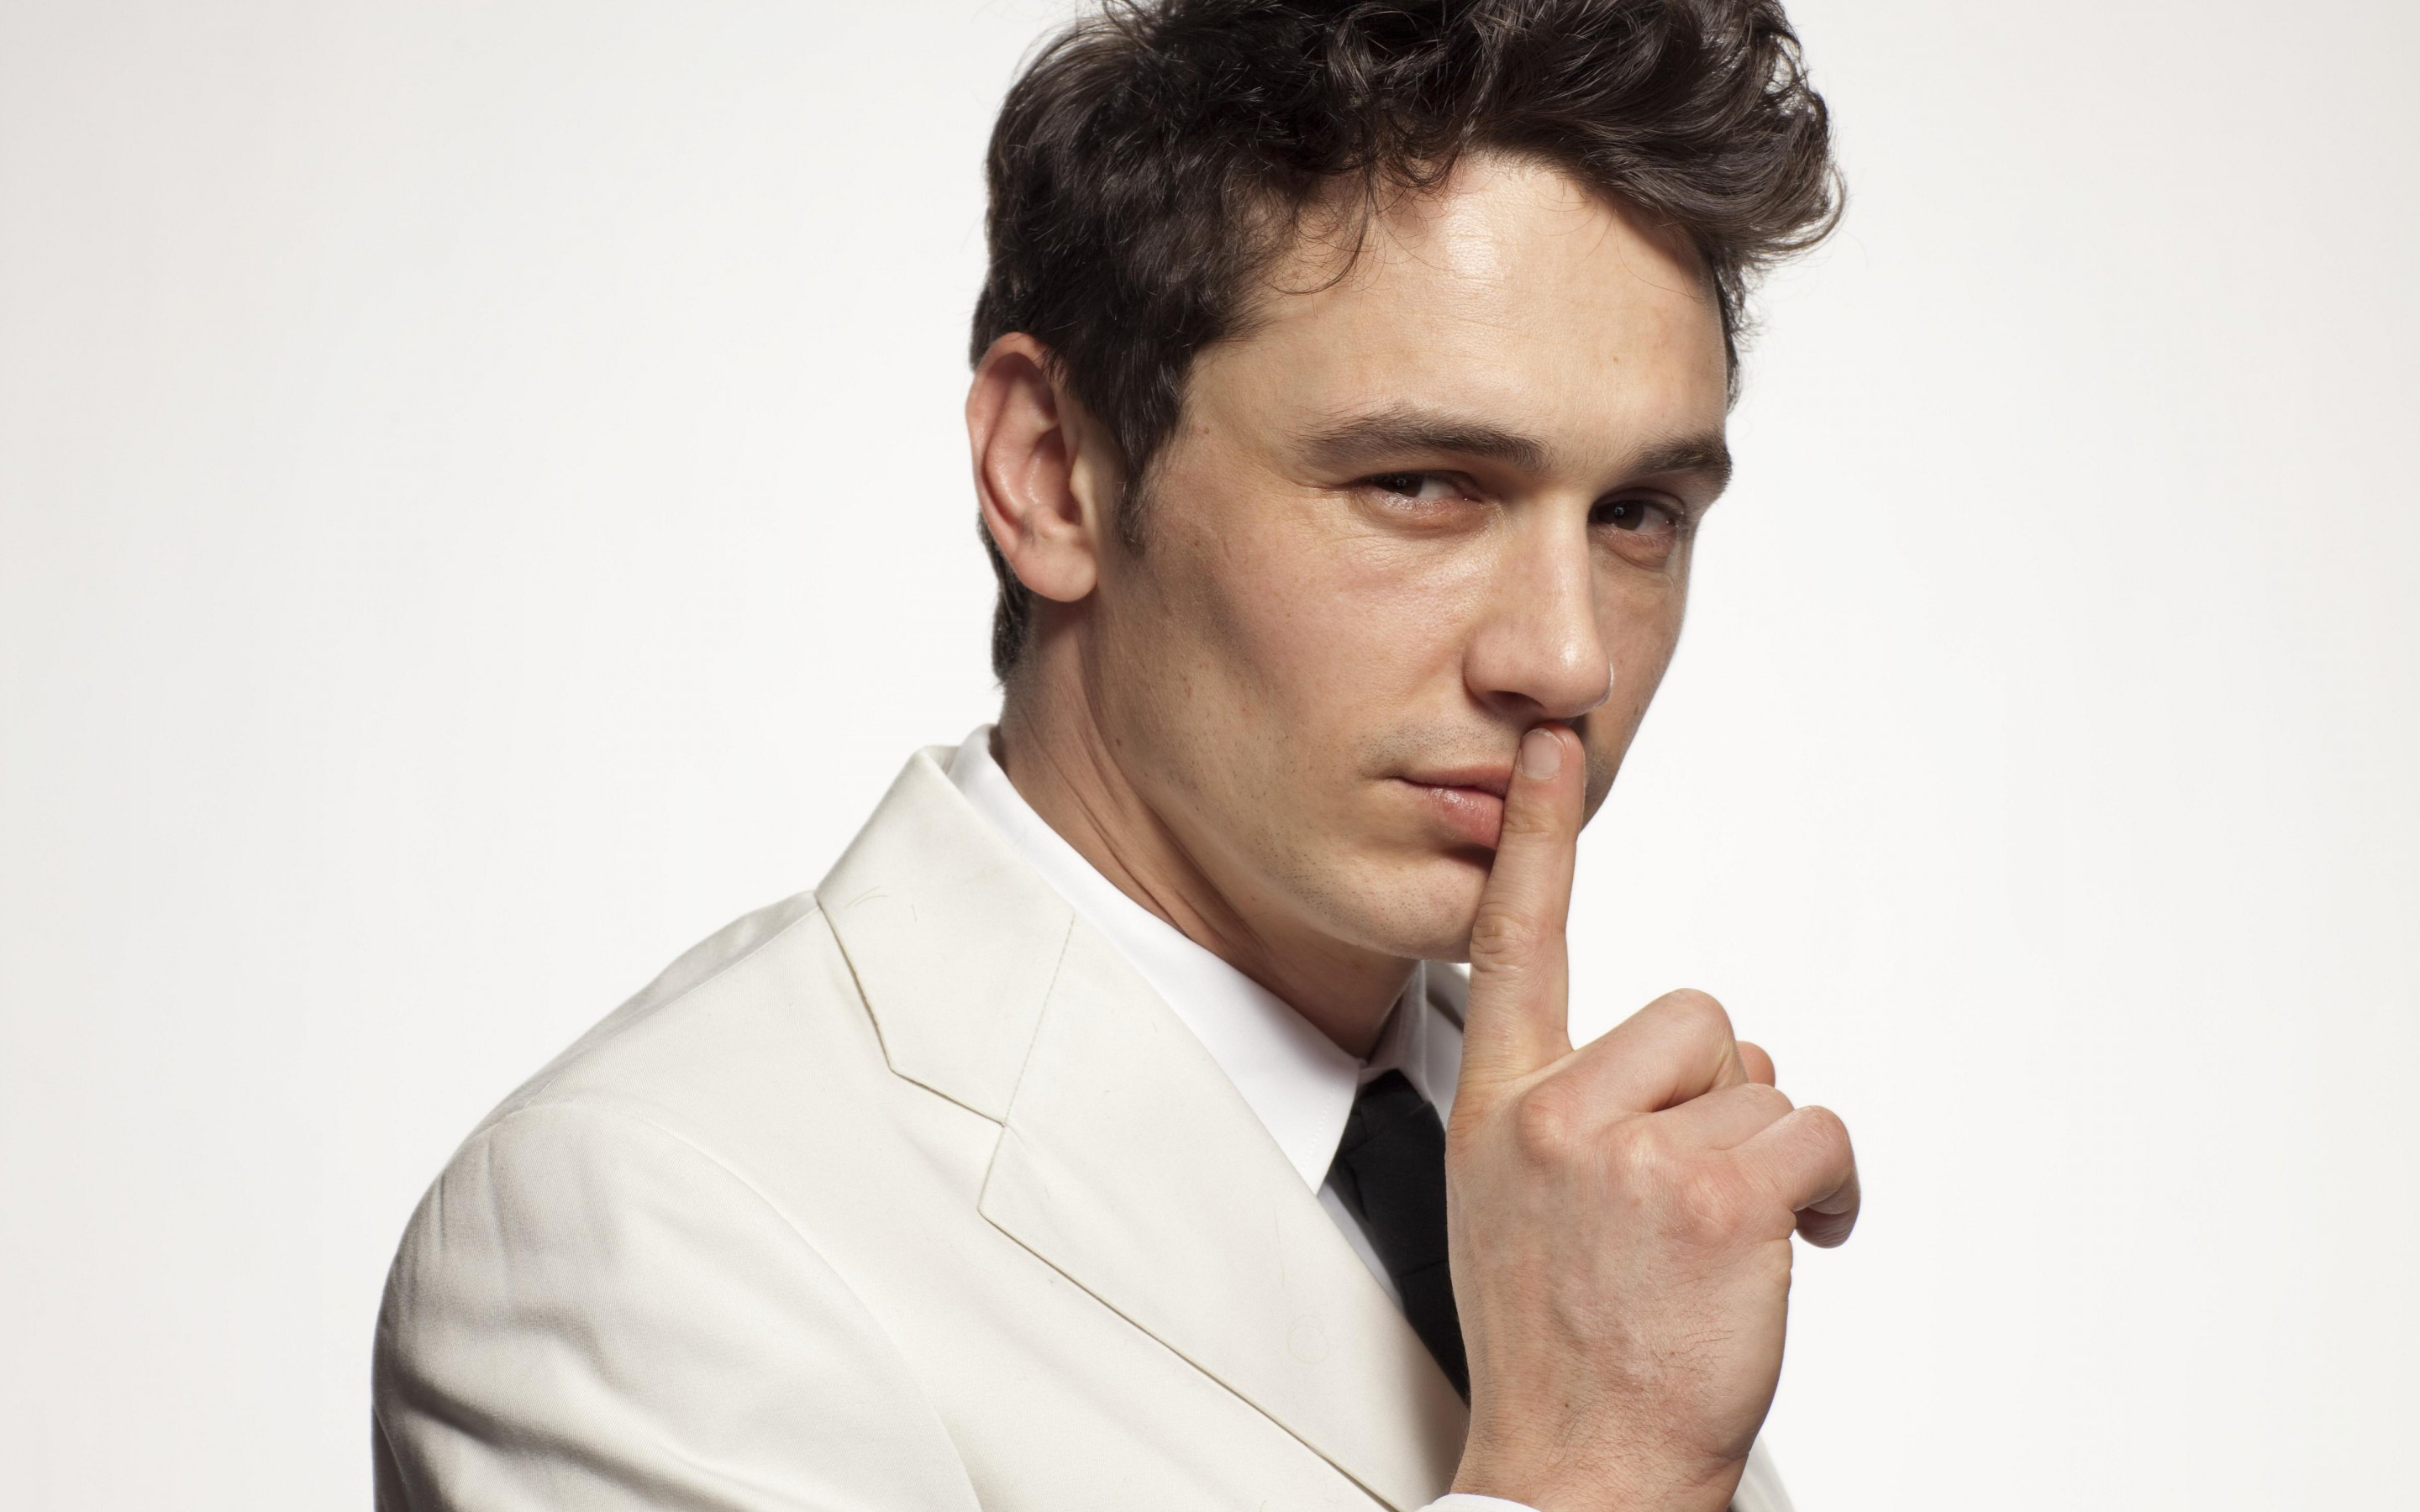 James Franco Full HD Wallpaper And Background Image